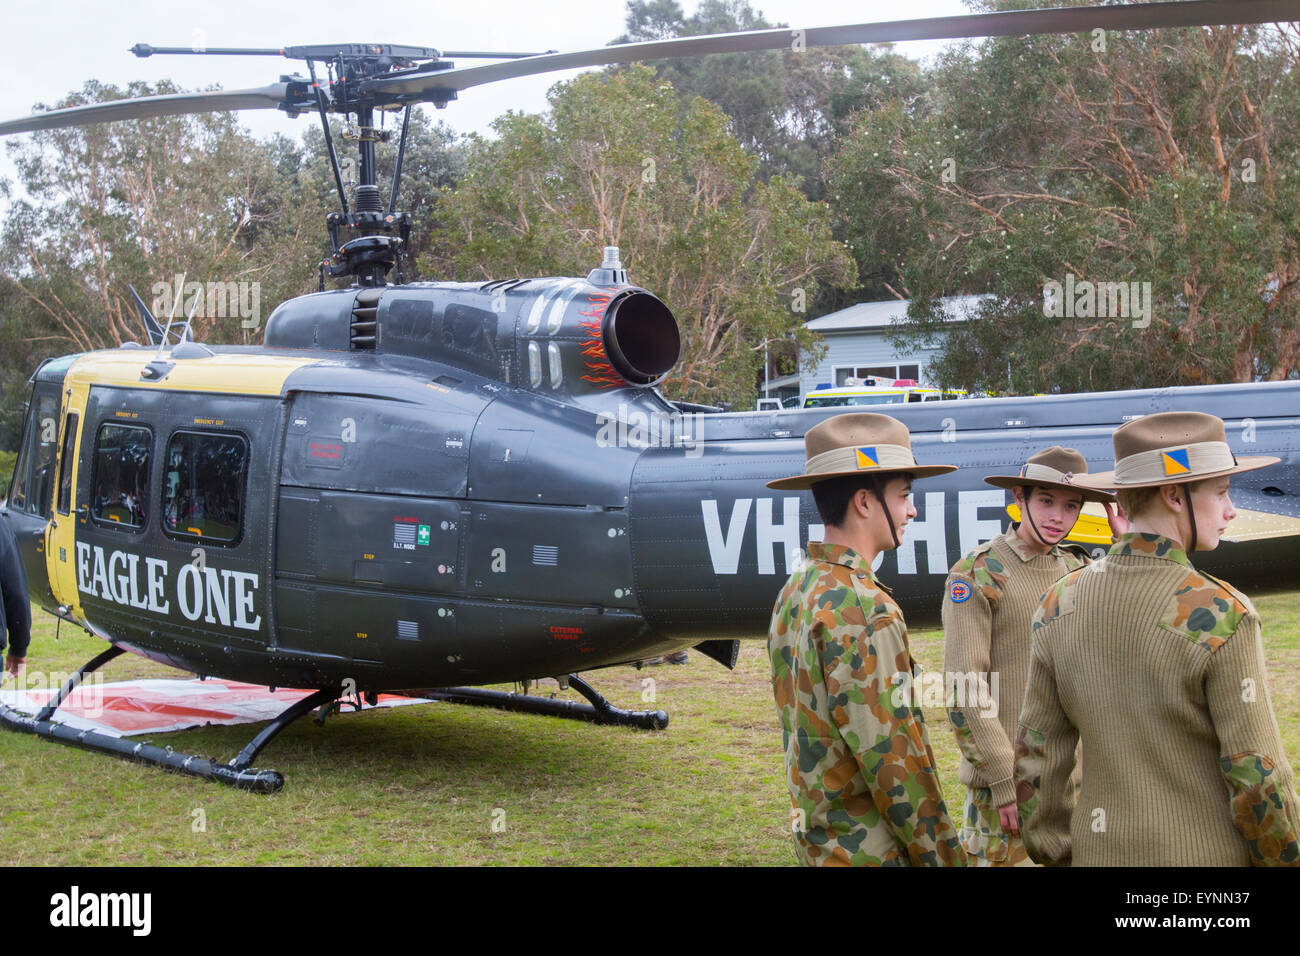 Bell UH-1 Iroquois huey helicopter at a Sydney military ...